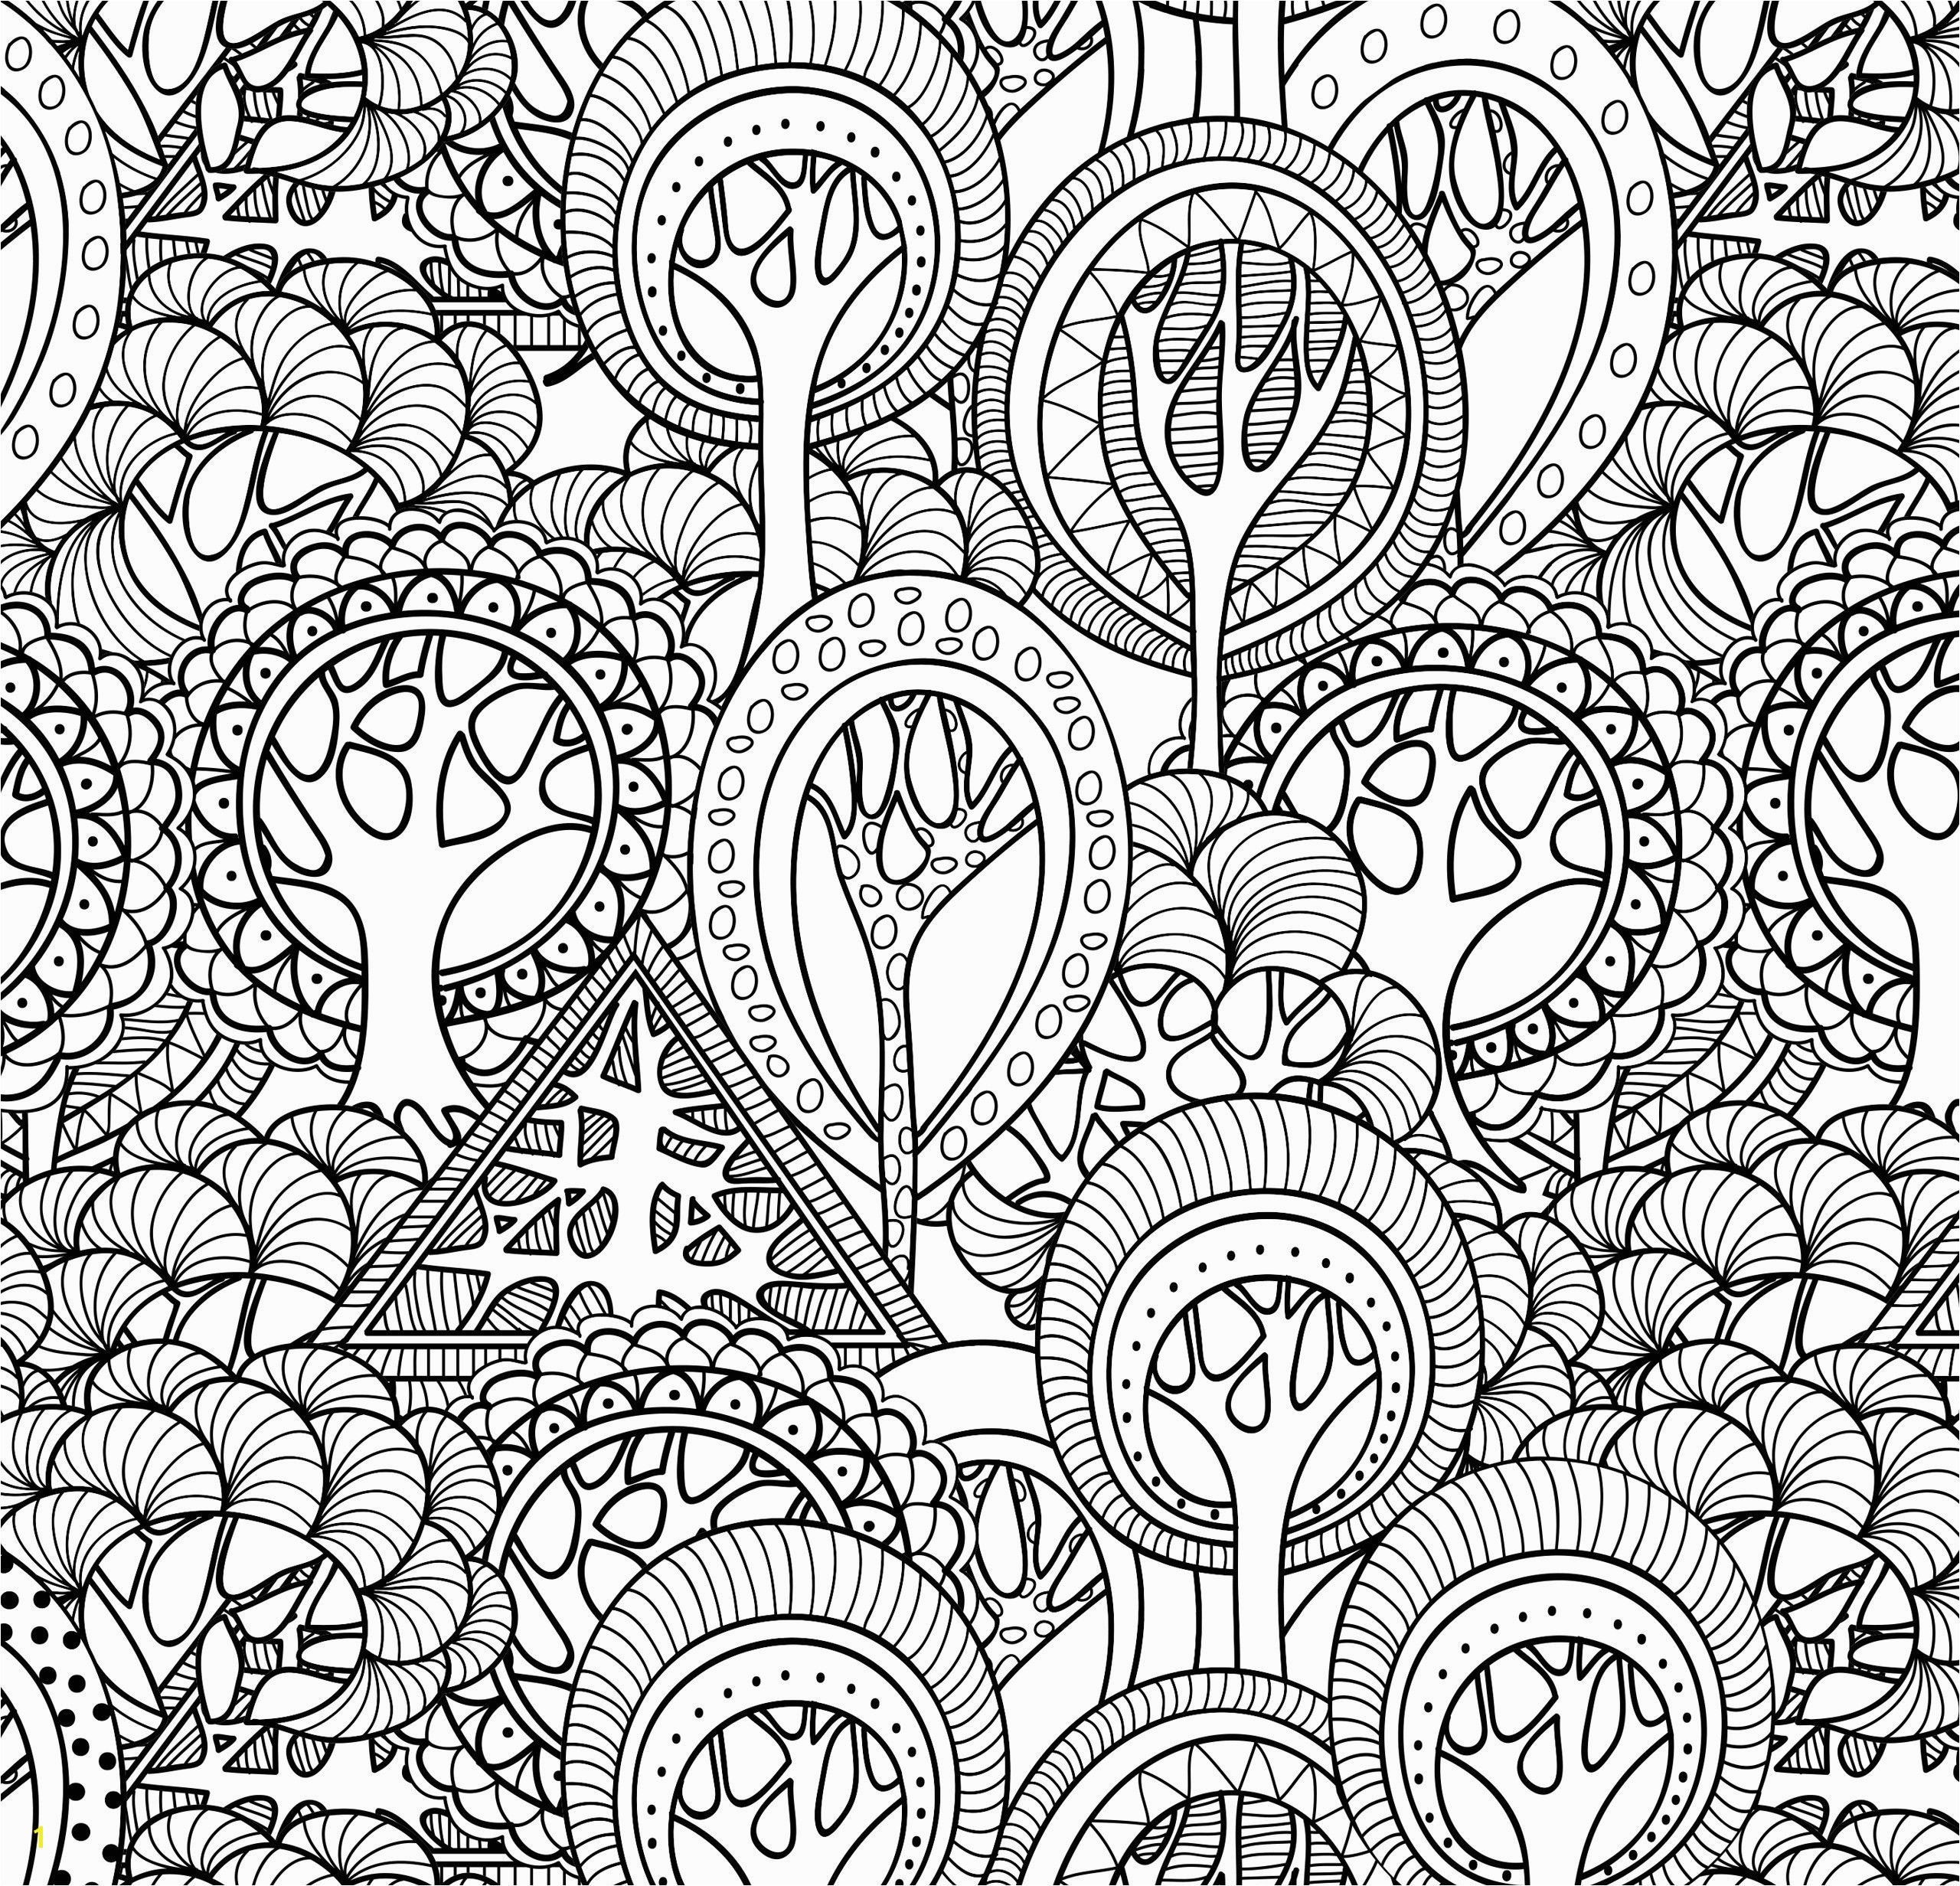 Avenger Coloring Pages Best Cool Coloring Page Unique Witch Coloring Pages New Crayola Pages 0d